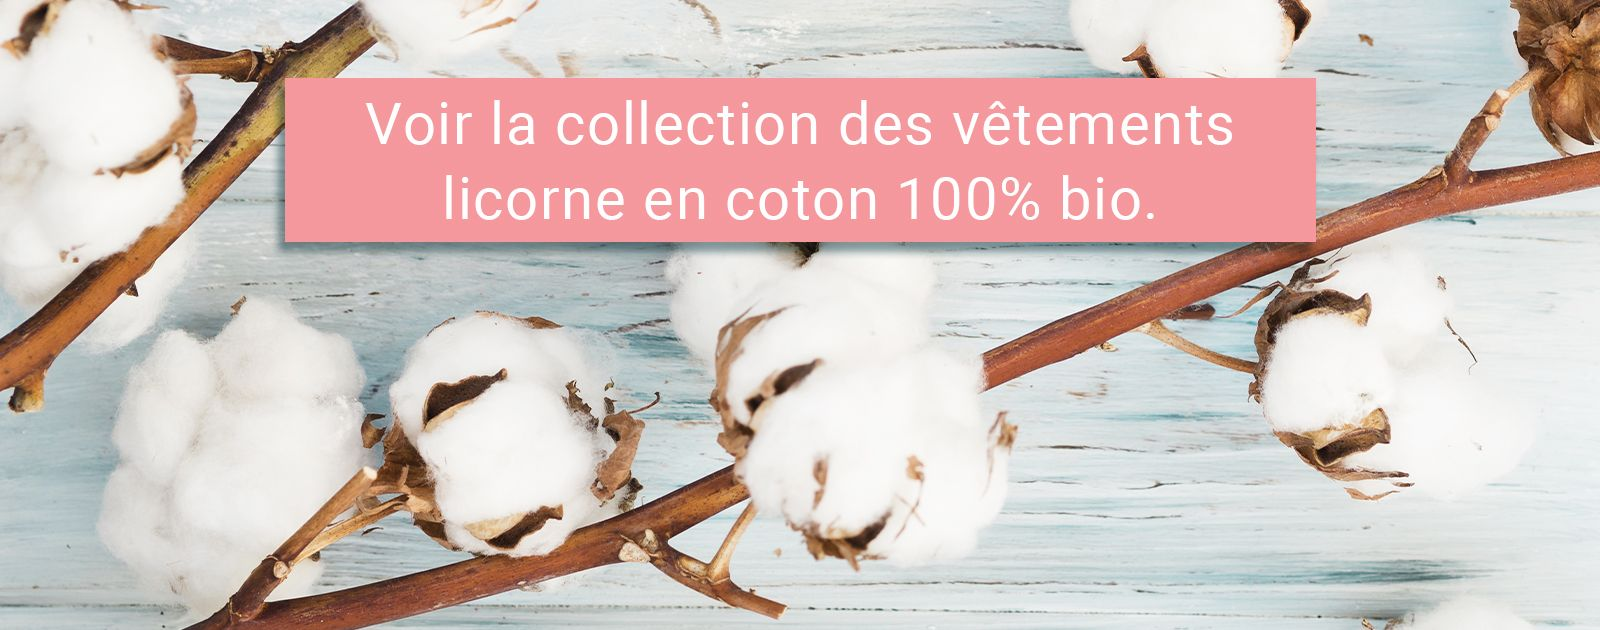 Collection vêtements licorne en coton bio